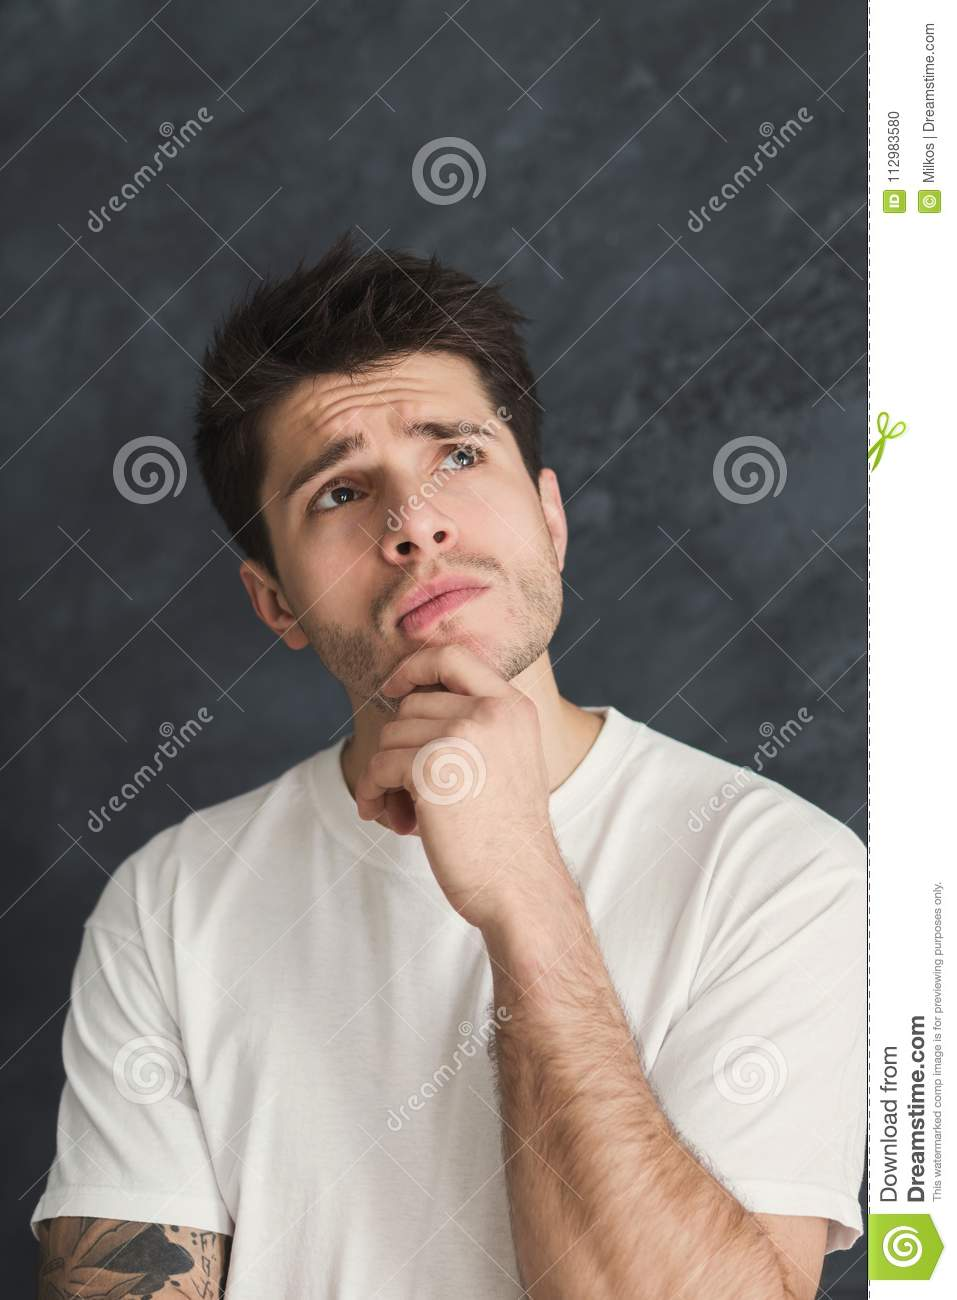 Pensive man posing with hand on chin